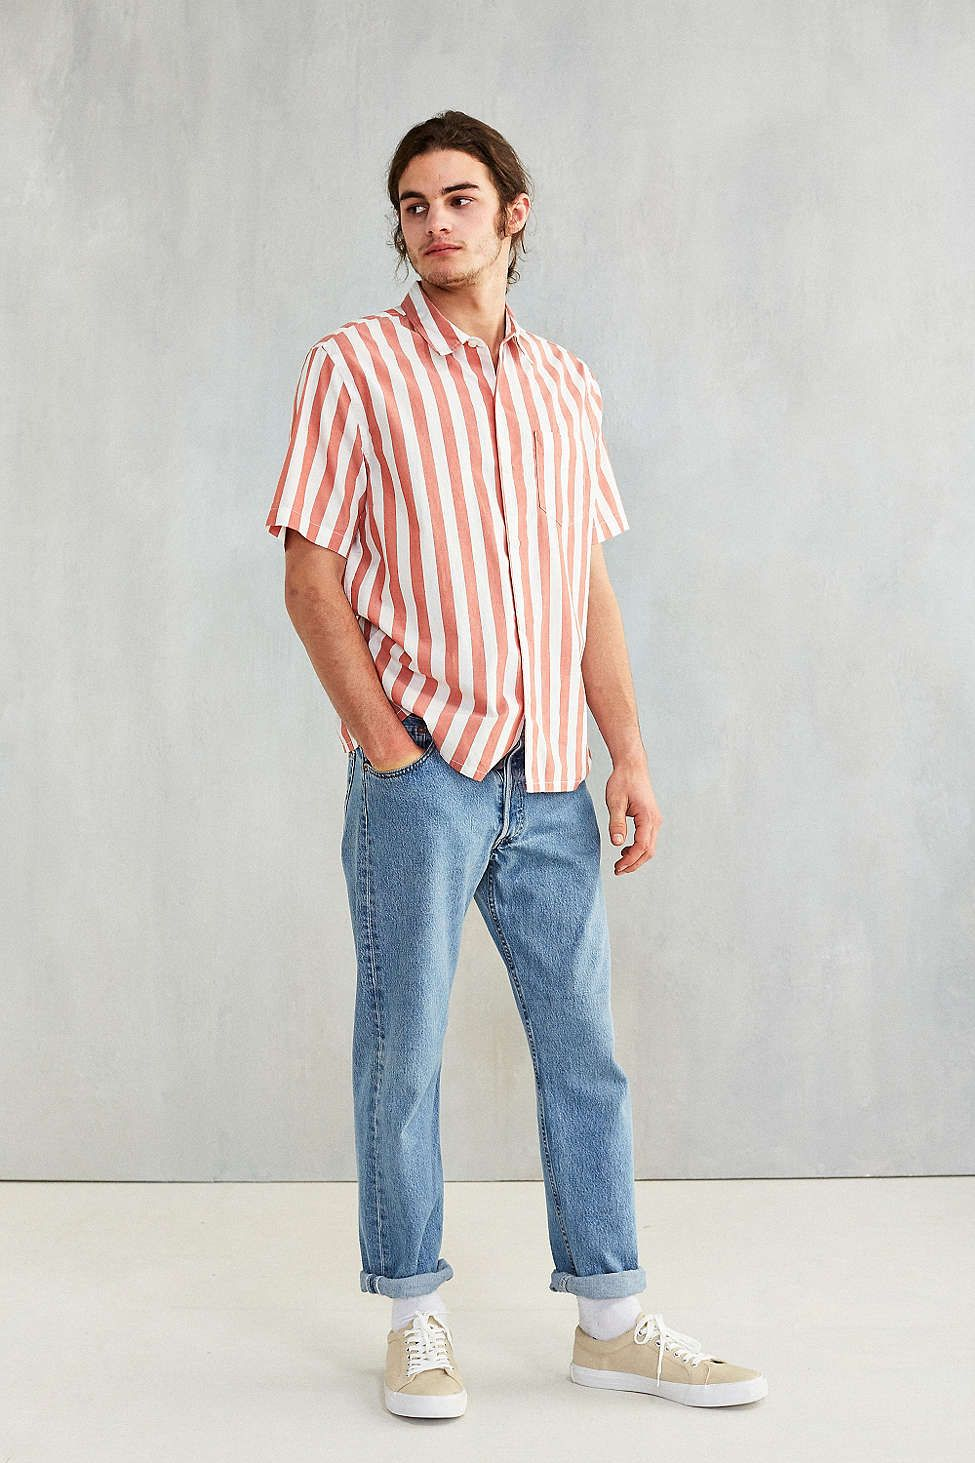 CPO Awning Stripe Short-Sleeve Button-Down Shirt | Striped shorts ...